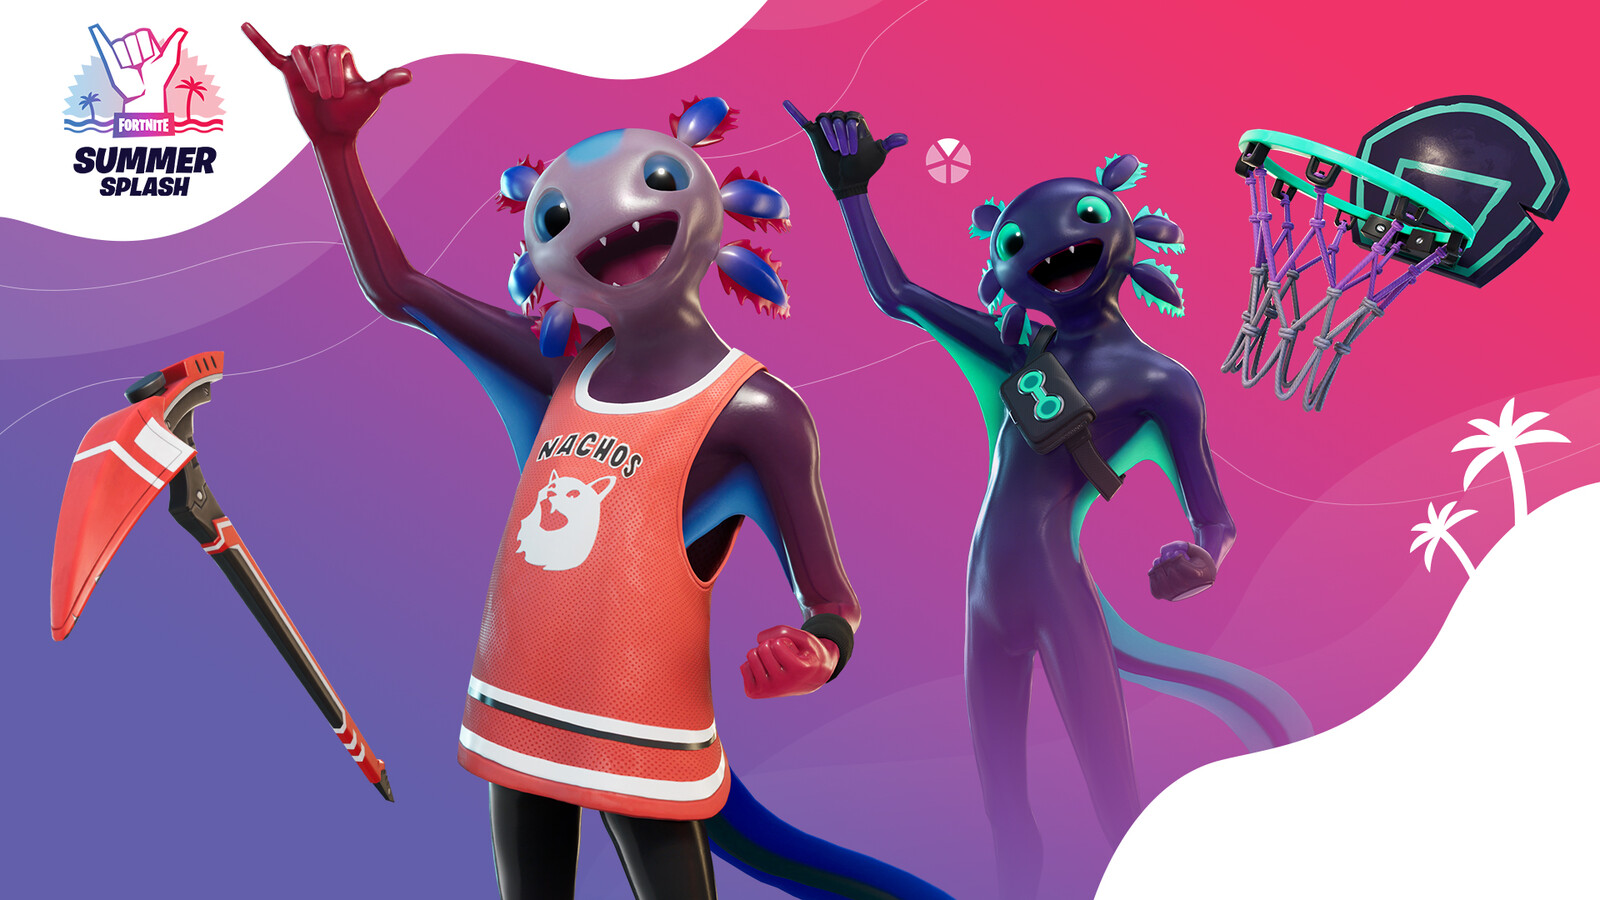 (marketing artwork created by Epic Games)